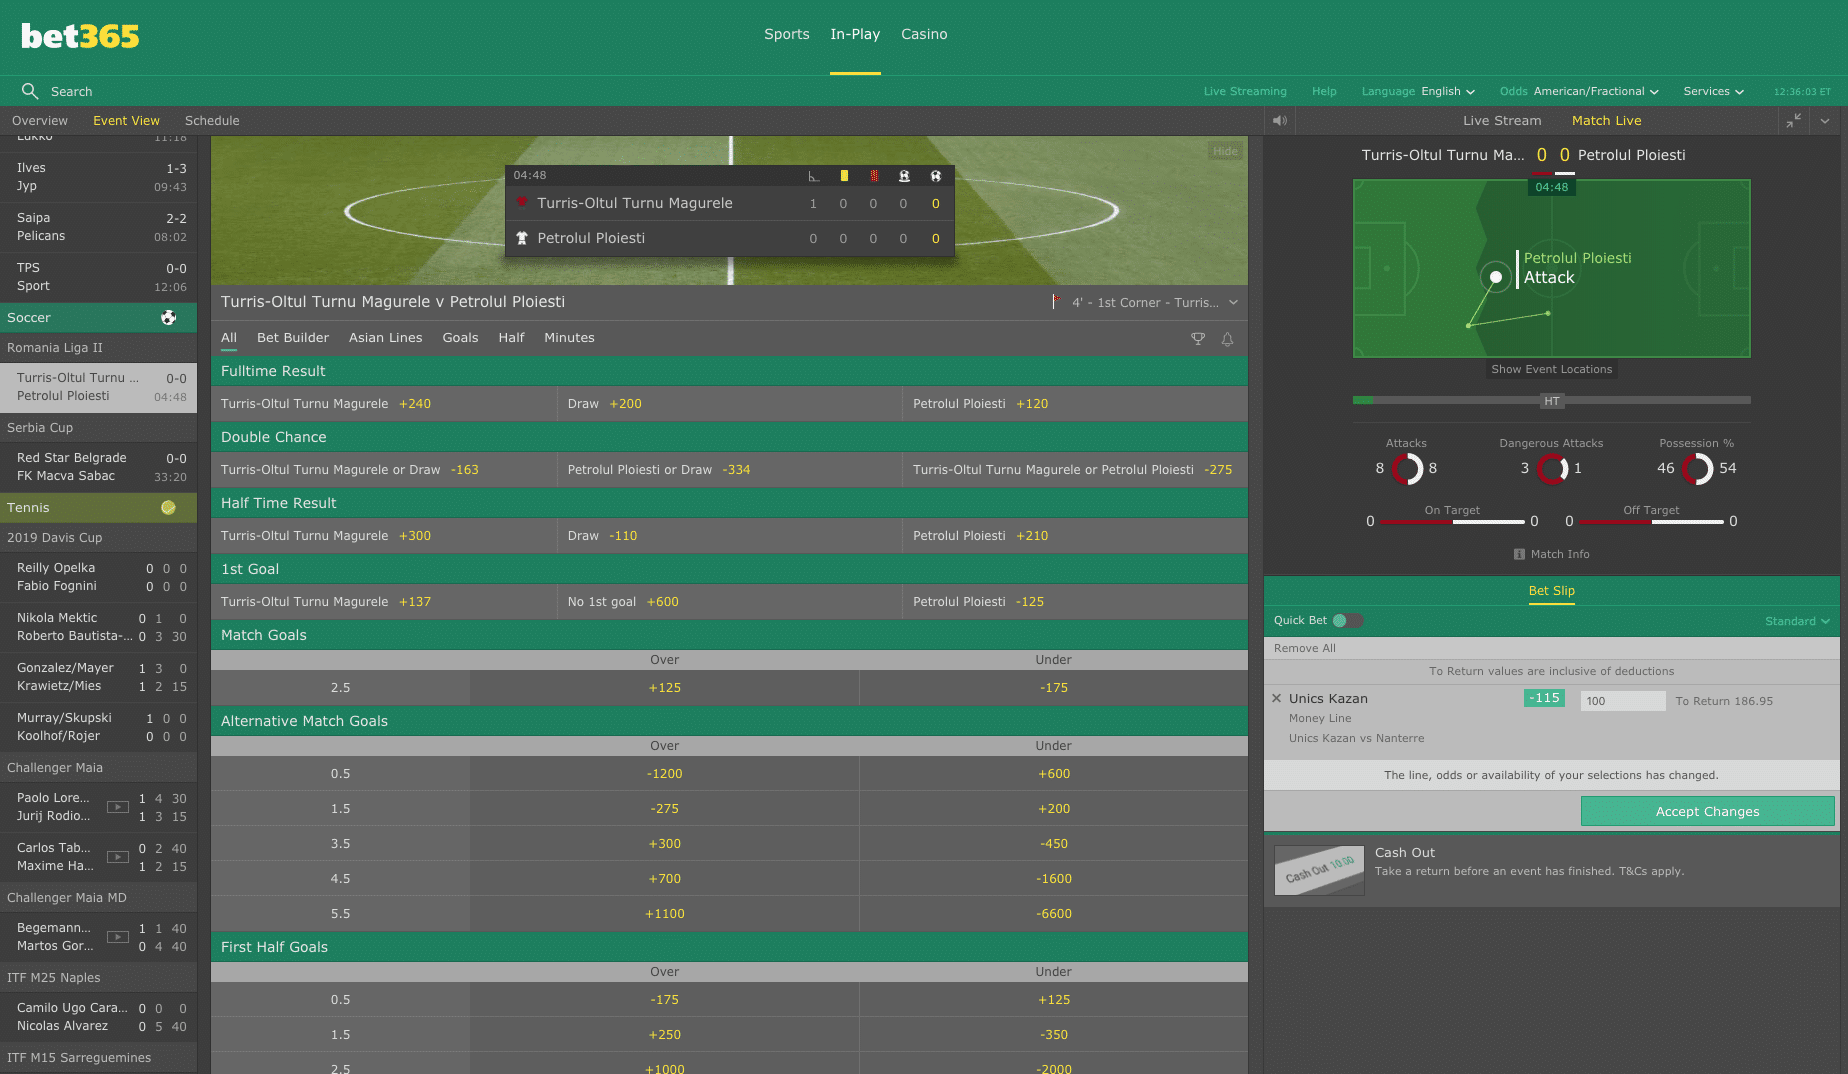 Bet365 in play betting 2